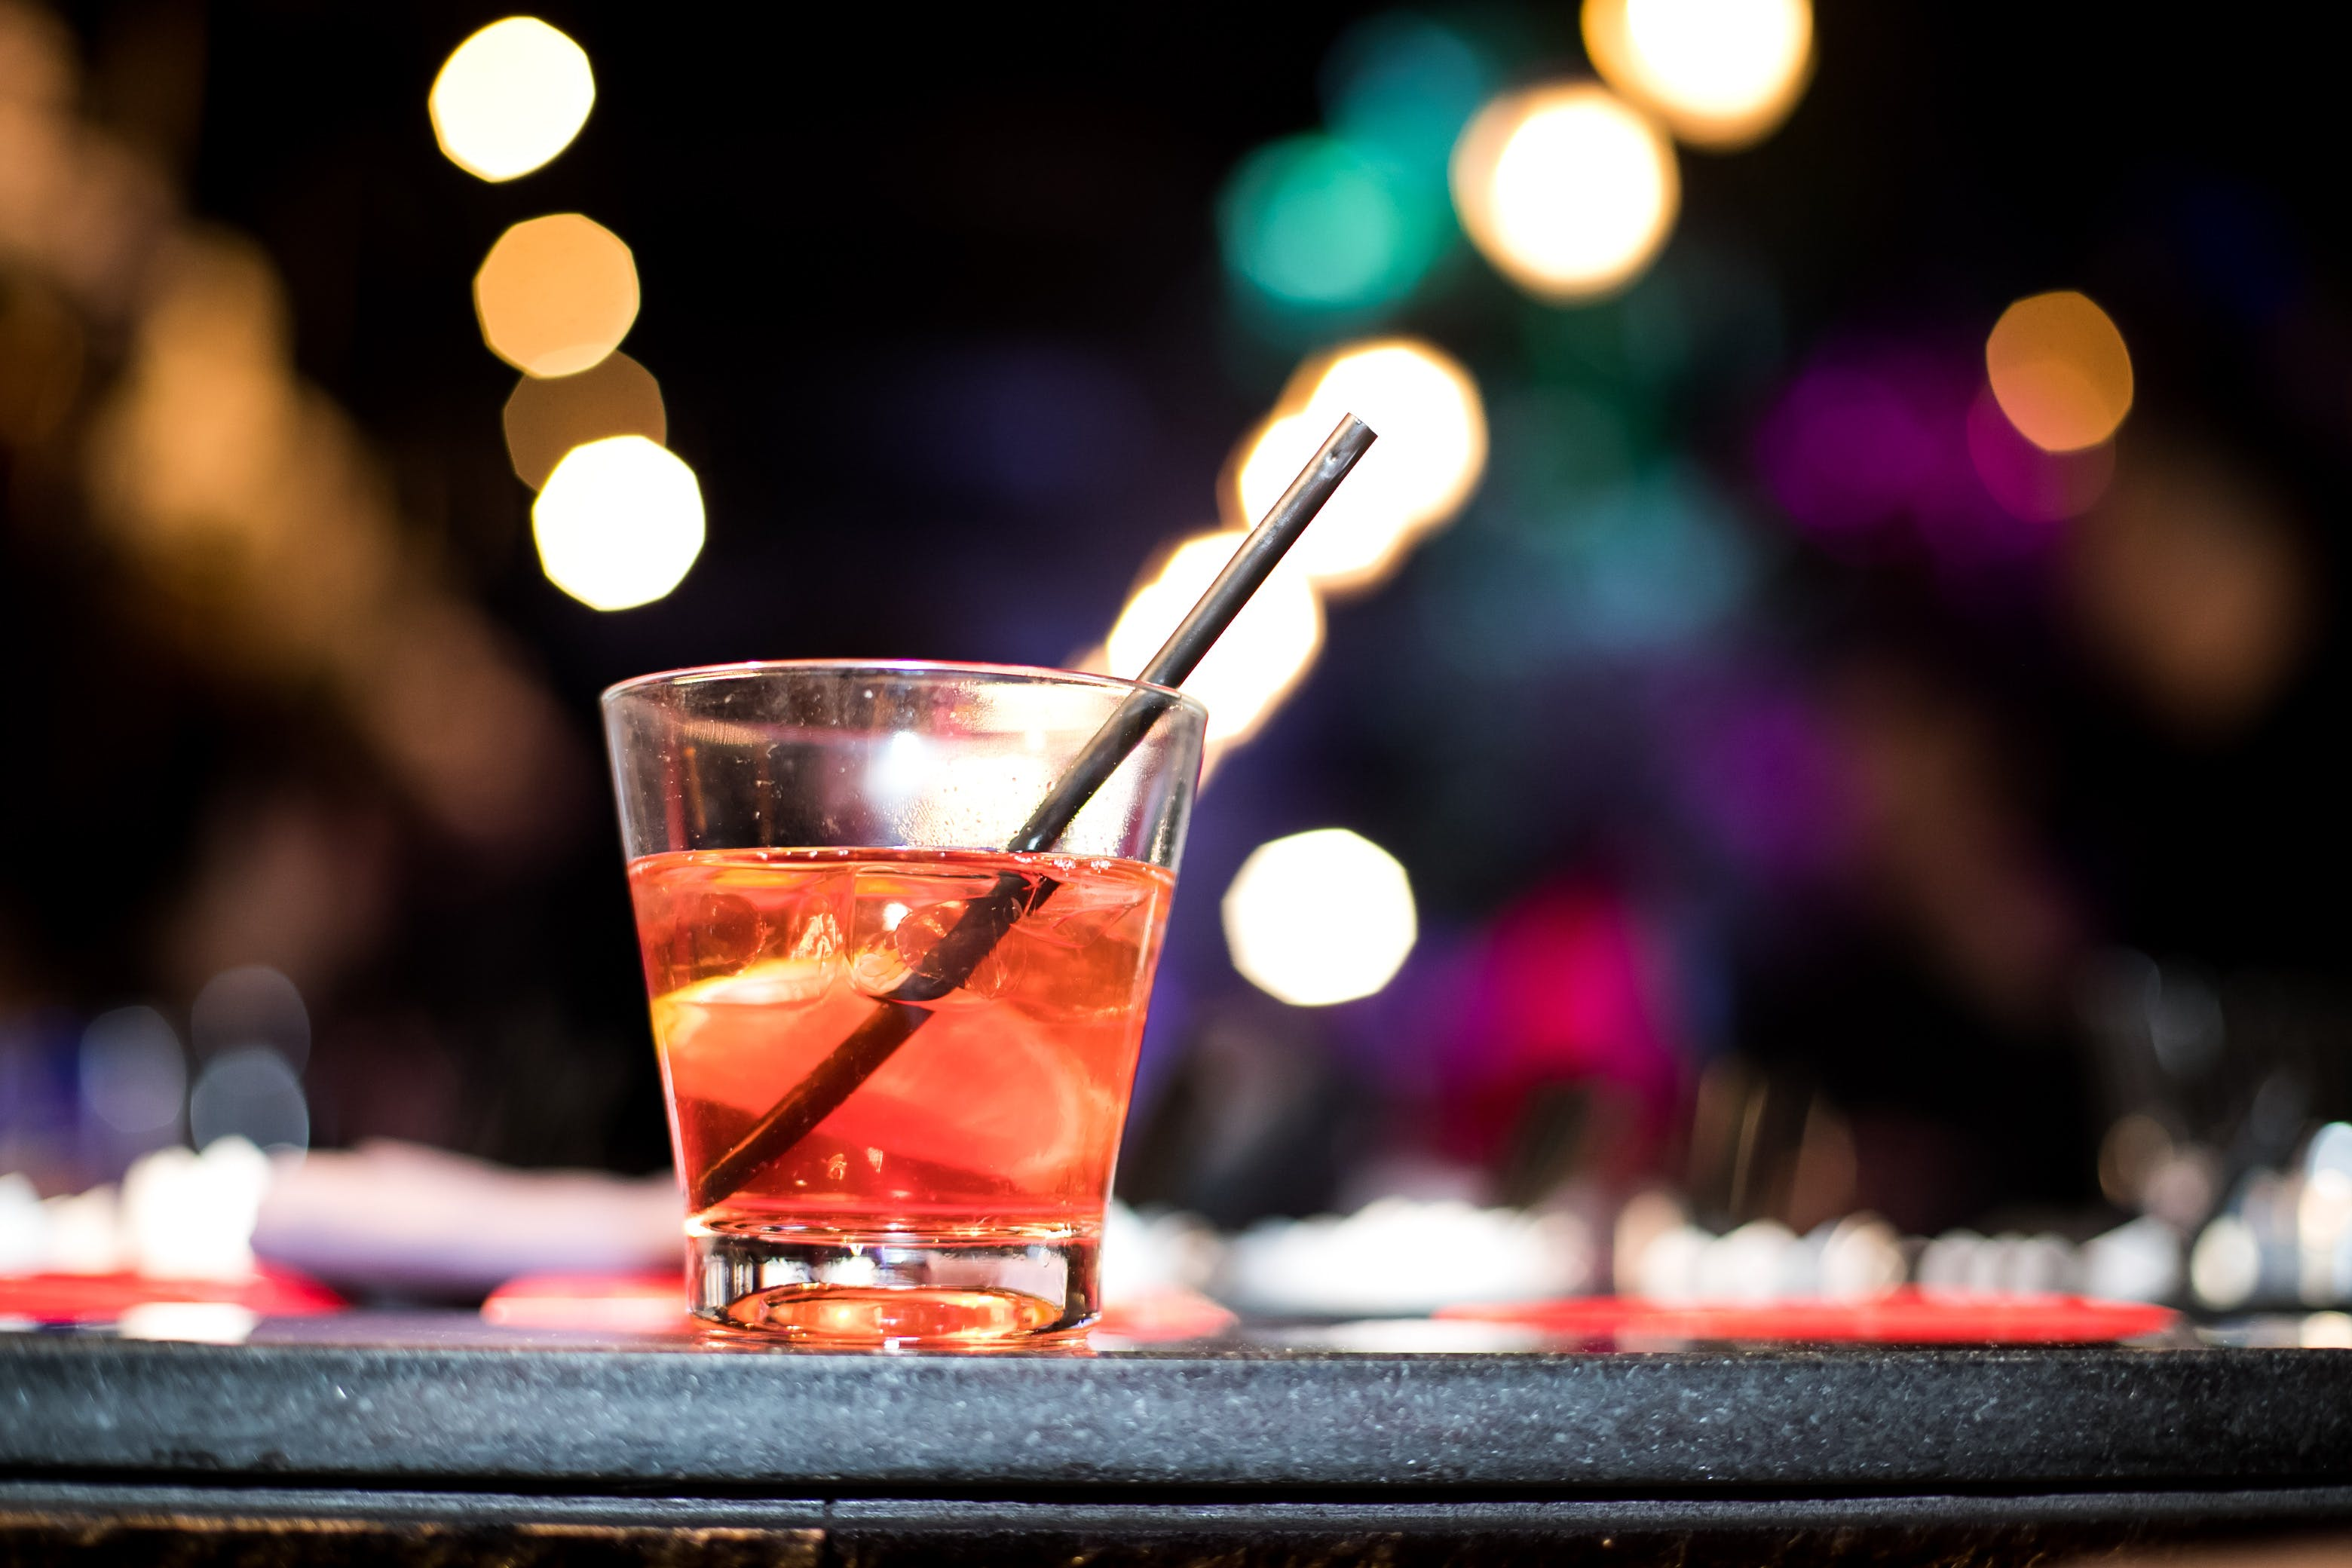 Free stock photo of alcohol, bokeh, midnight, night lights